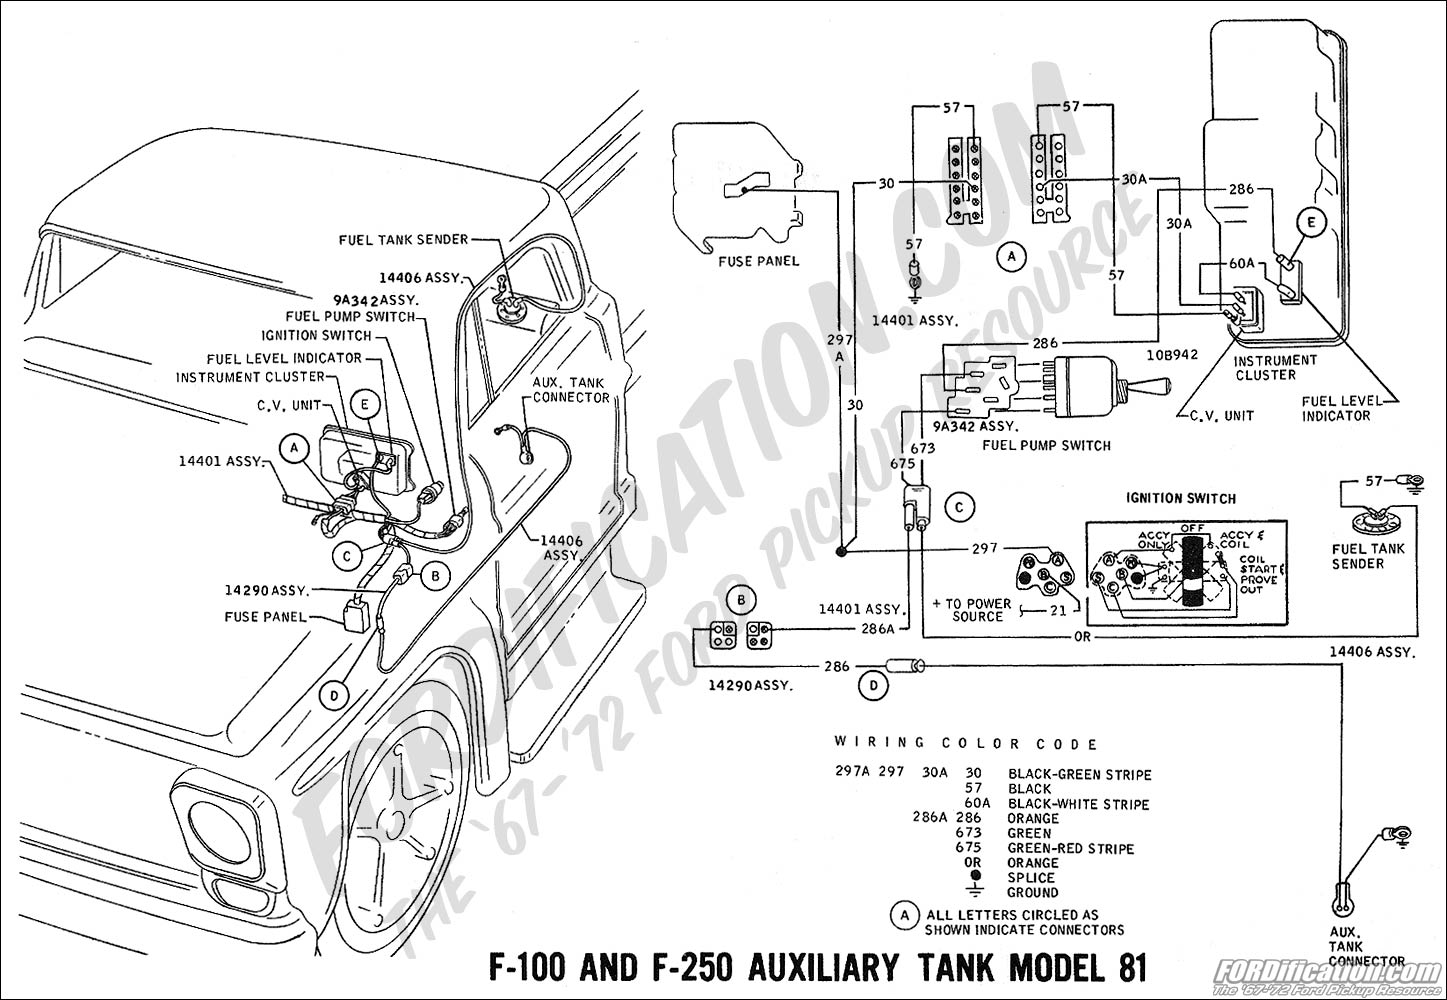 wiring_69aux fuel ford truck technical drawings and schematics section h wiring fuse panel diagram for 1999 ford f150 truck at eliteediting.co